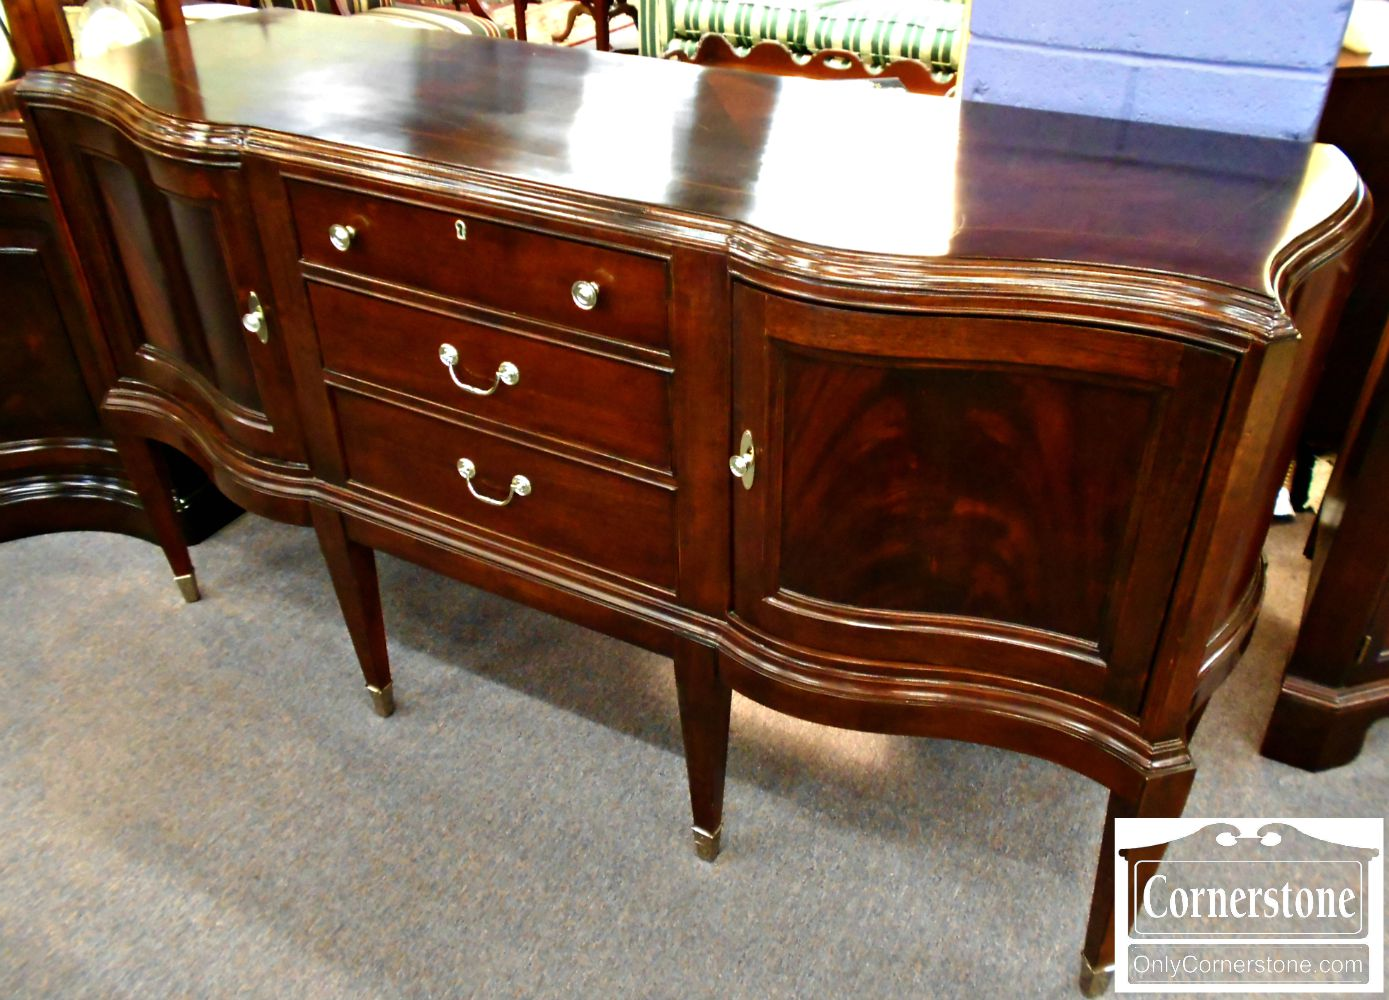 3959-865 PA House New Standards Sideboard